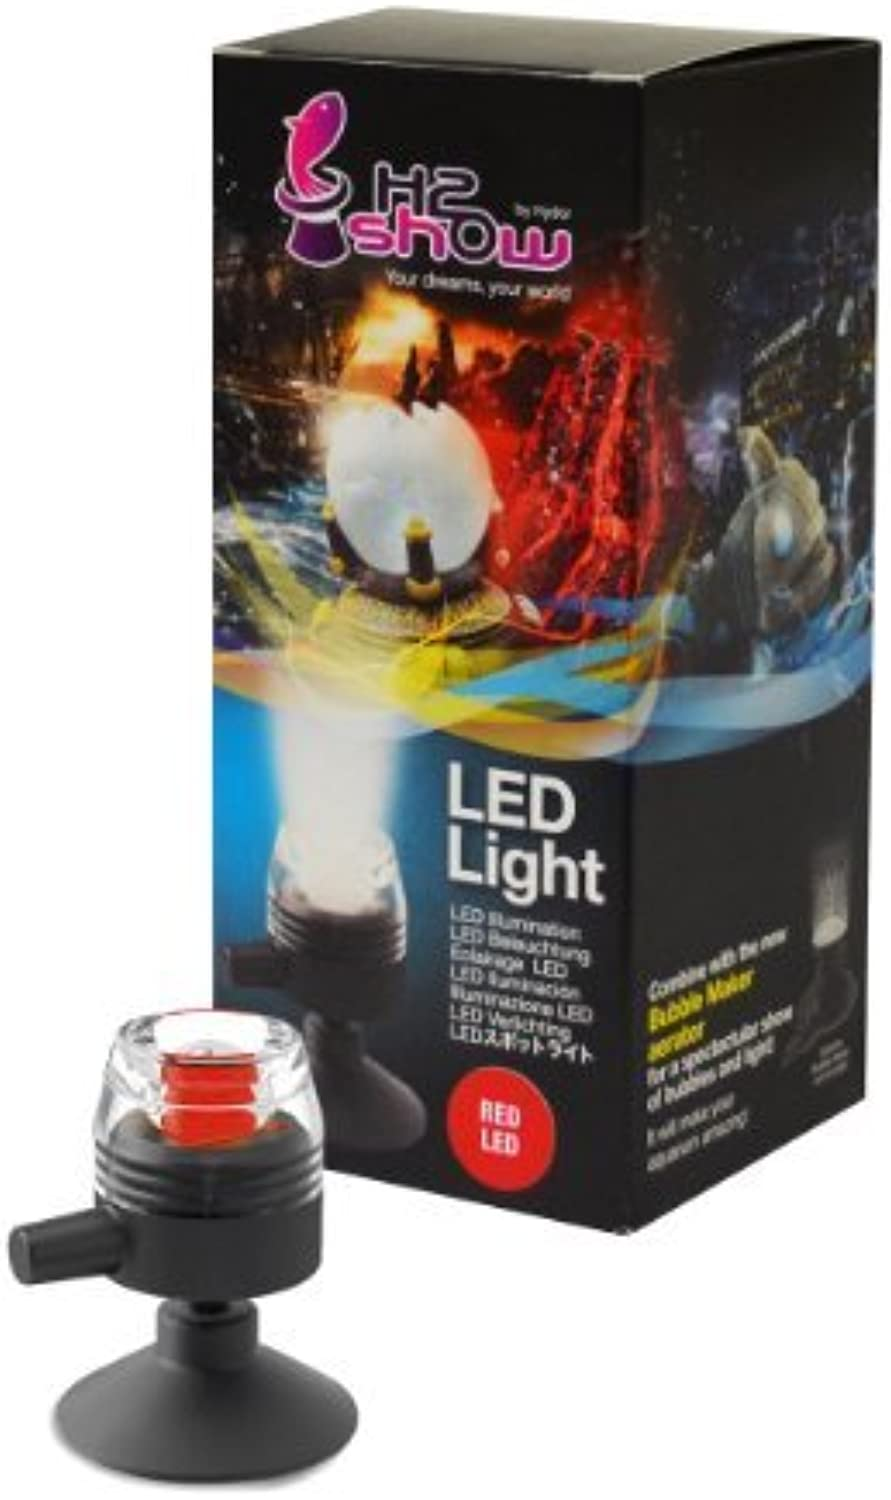 H2Show Red LED  Submersible Spotlight for Aquariums by Hydor